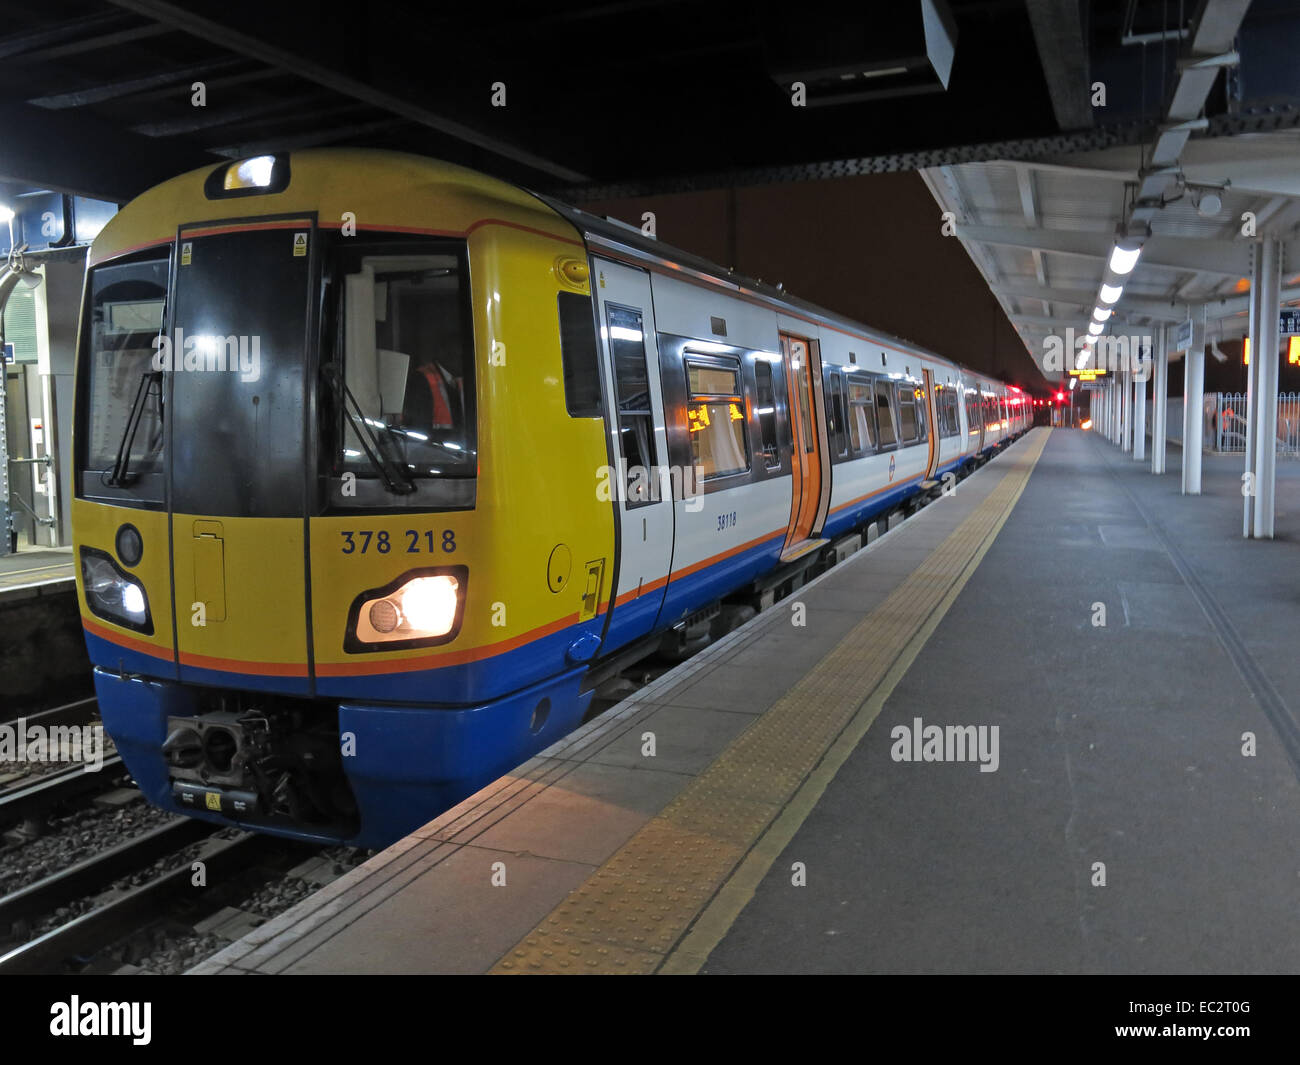 platform,platforms,train,trains,lit,lights,Battersea,tube,tube train,passenger,passengers,guard,accident,England,UK,GB,Great Britain,Clapham,Junction,Railway,station,at Night,rail,rails,lines,carriage,carriages,Gotonysmith,tube trains,mind,the,gap,mind the gap,376215,378218,dusk,nightshot,nightshot,Buy Pictures of,Buy Images Of